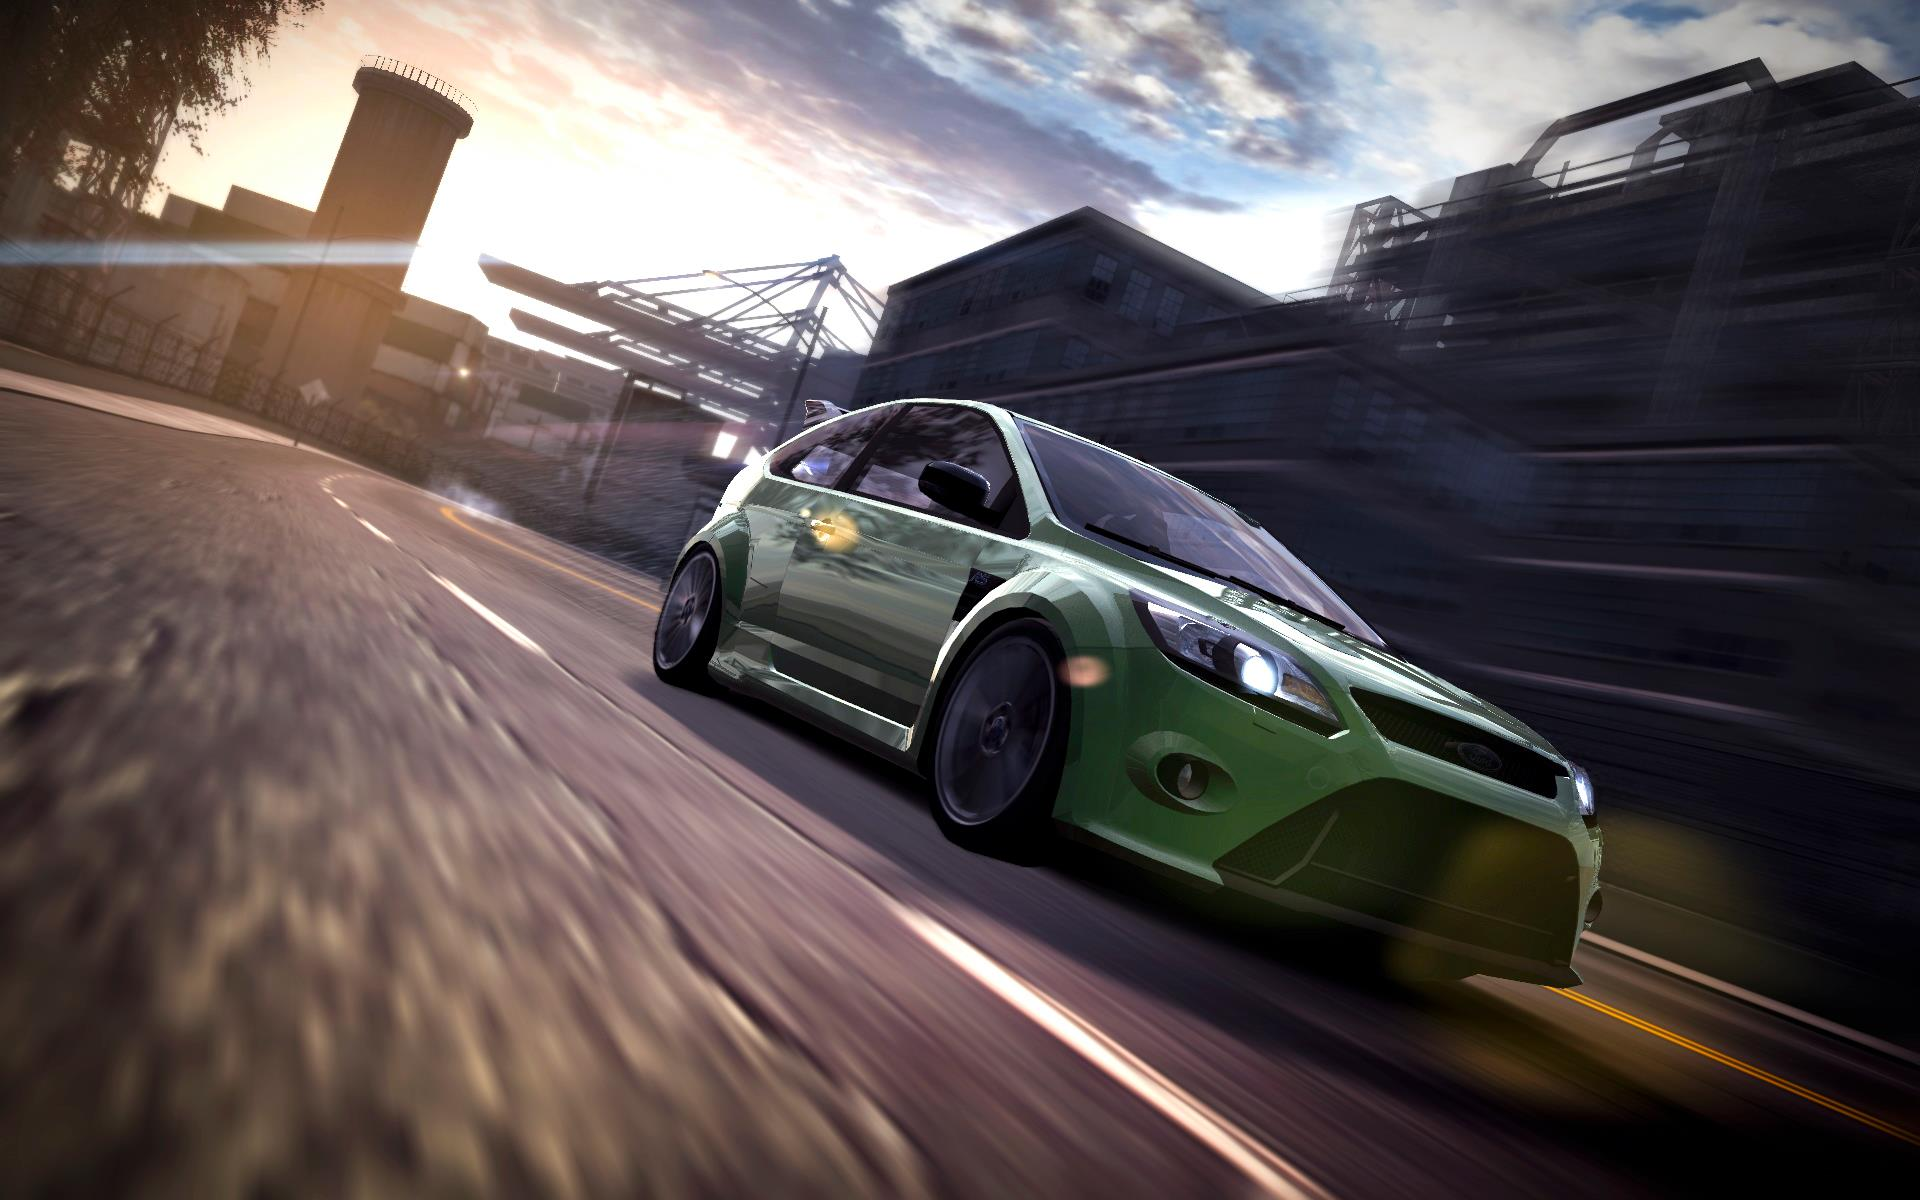 Ford Focus Rs Nfs World Wiki Fandom Powered By Wikia